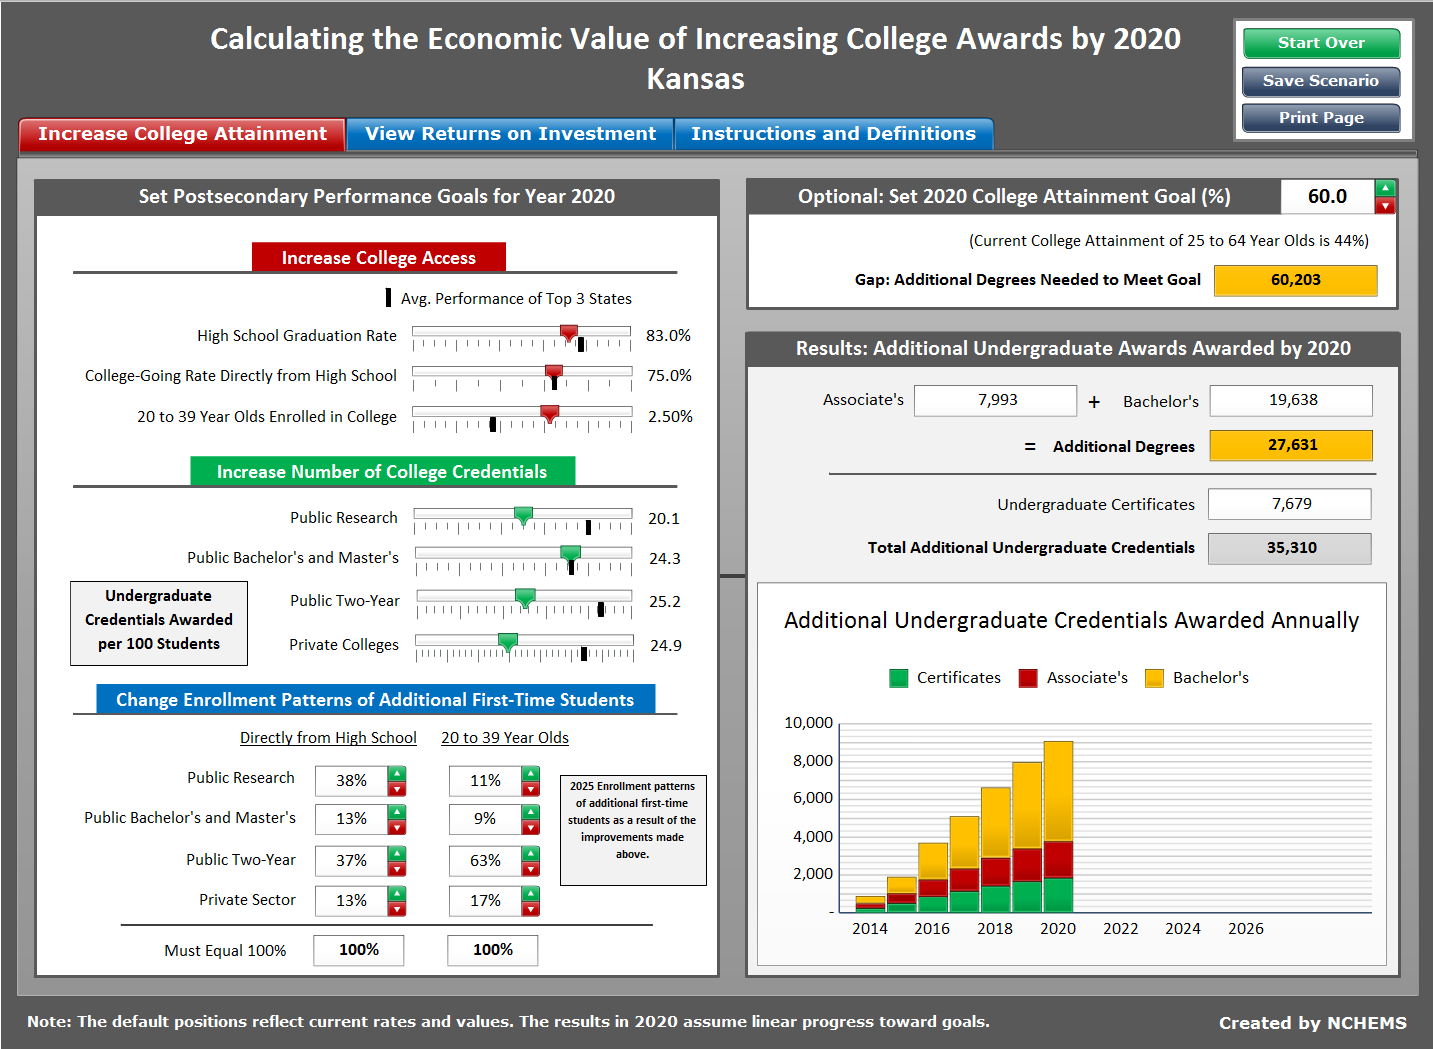 Screen Capture of National Center for Higher Education Management Systems tool